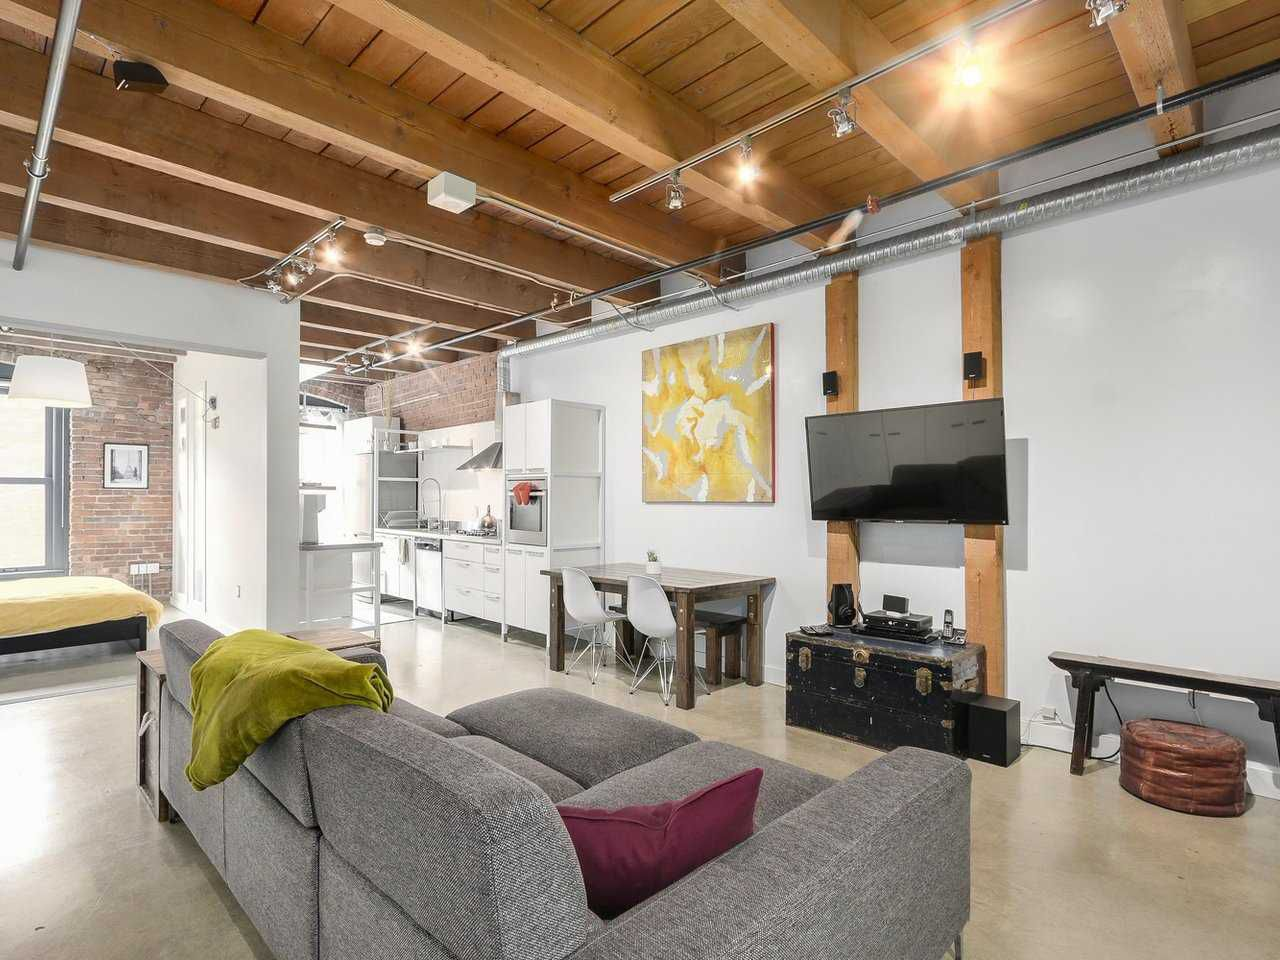 Main Photo: 205 55 E CORDOVA STREET in Vancouver: Downtown VE Condo for sale (Vancouver East)  : MLS®# R2182301